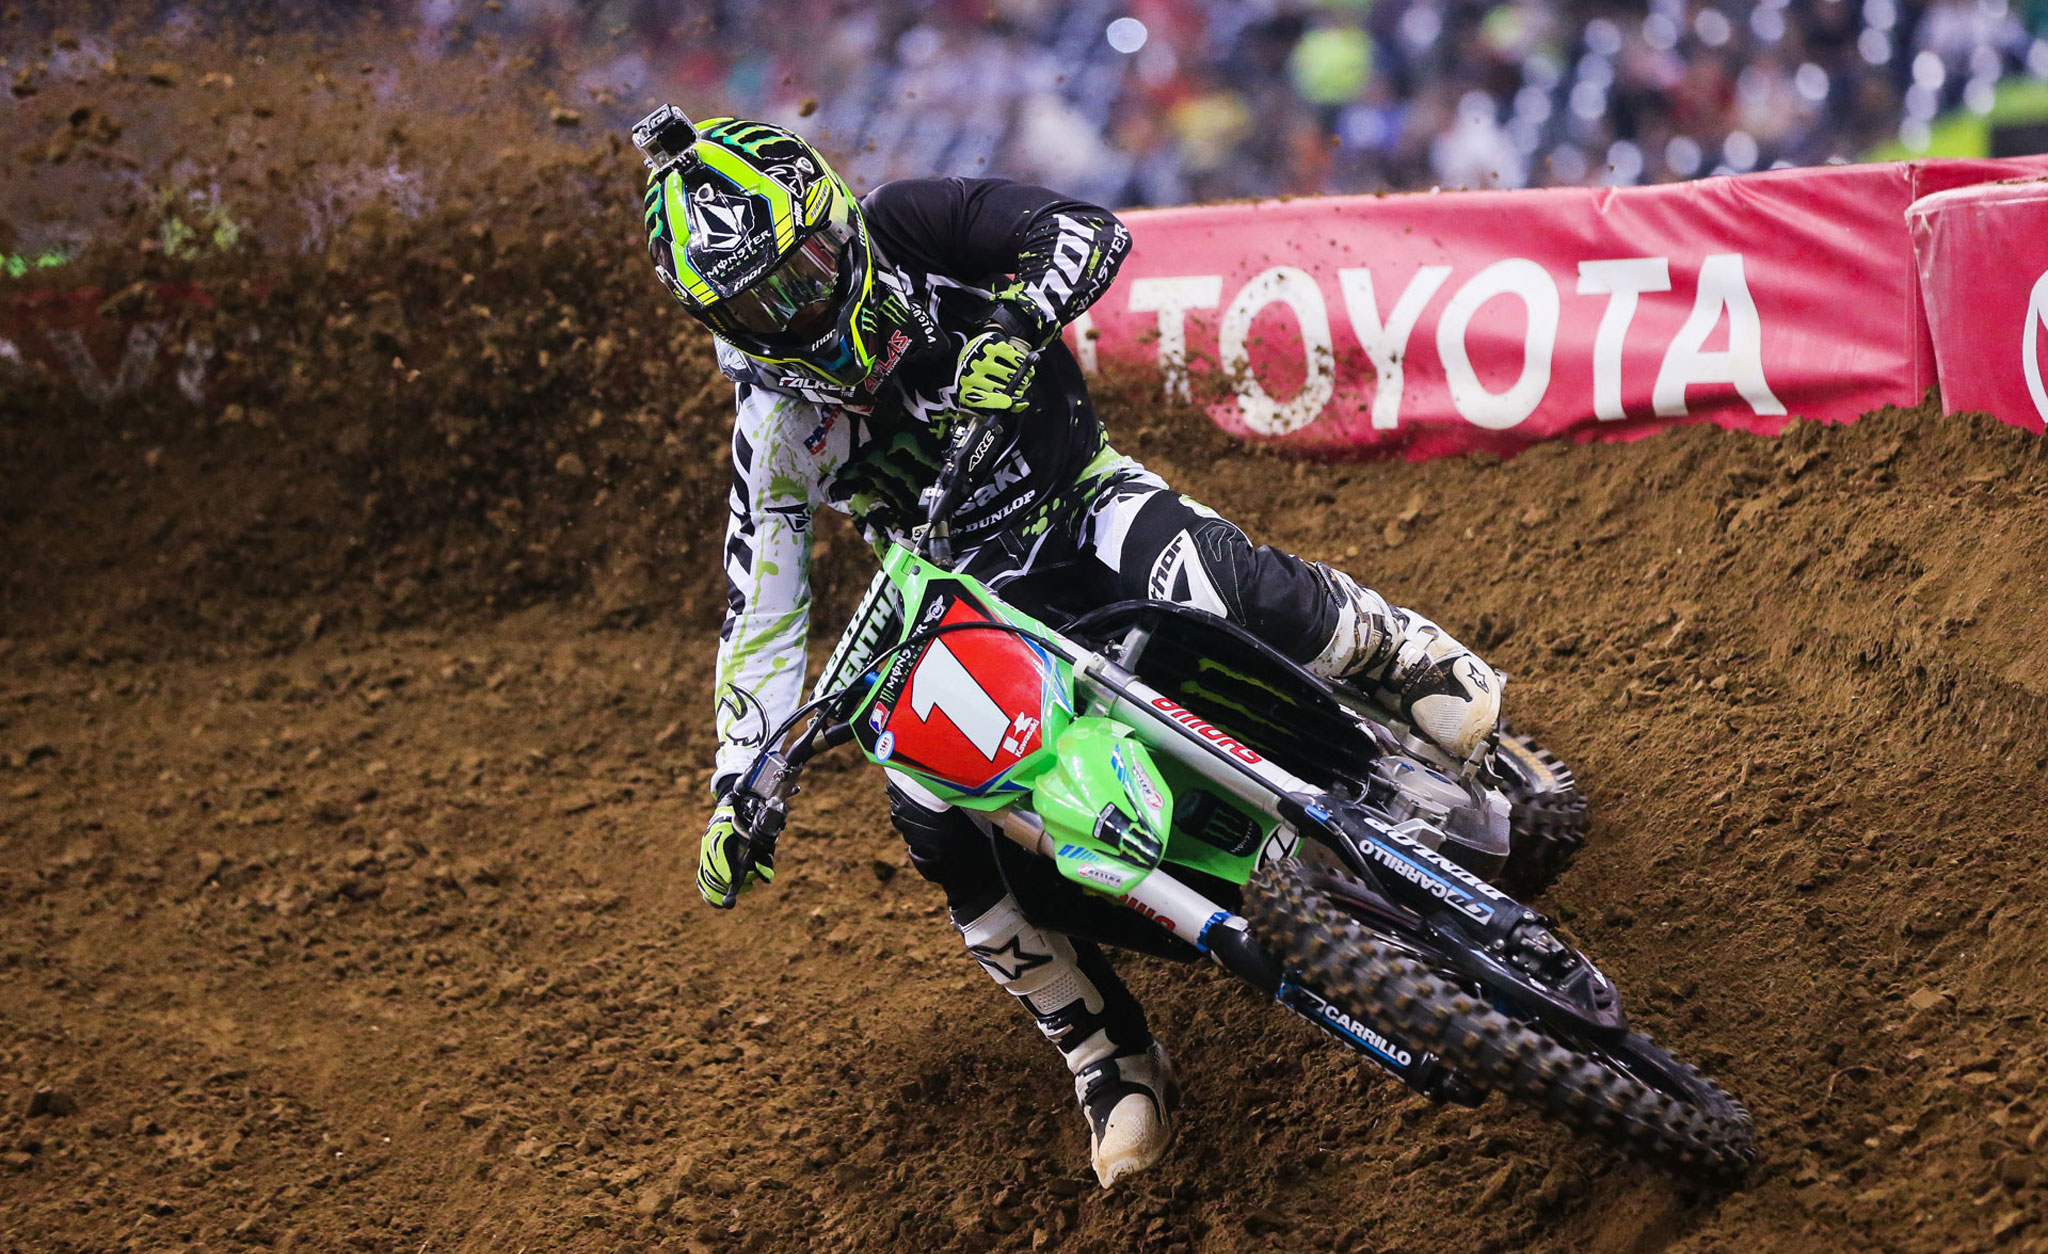 The Villopoto Story